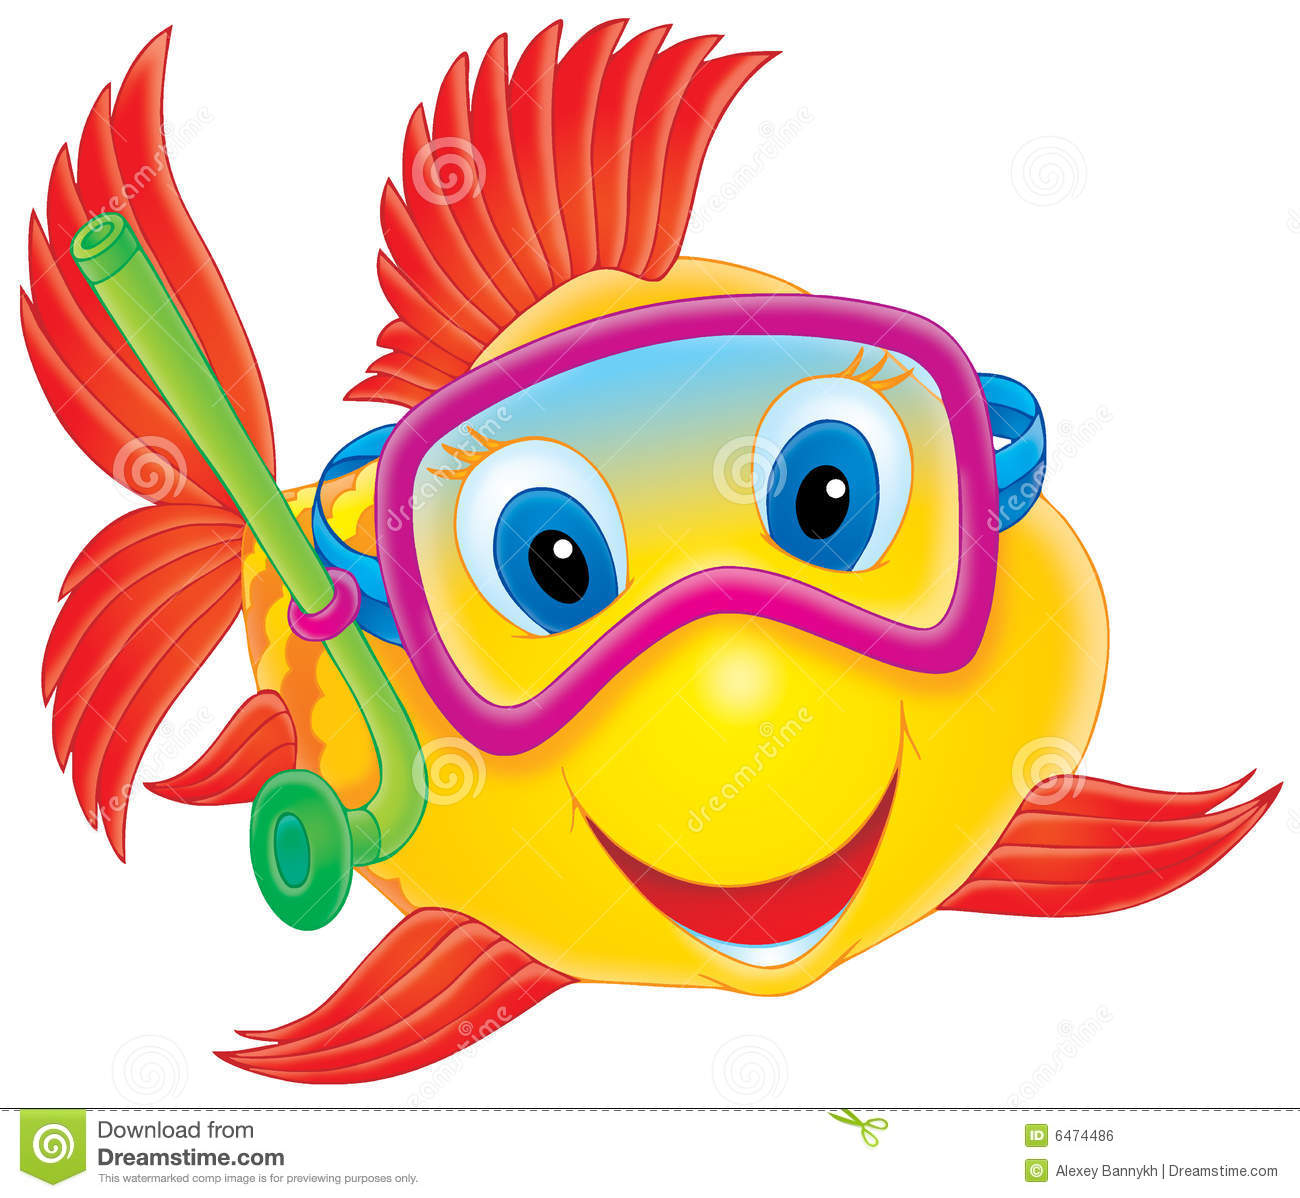 Cute Fish Clipart Coral Reef Fish Clipart Fish Diver 6474486 Jpg